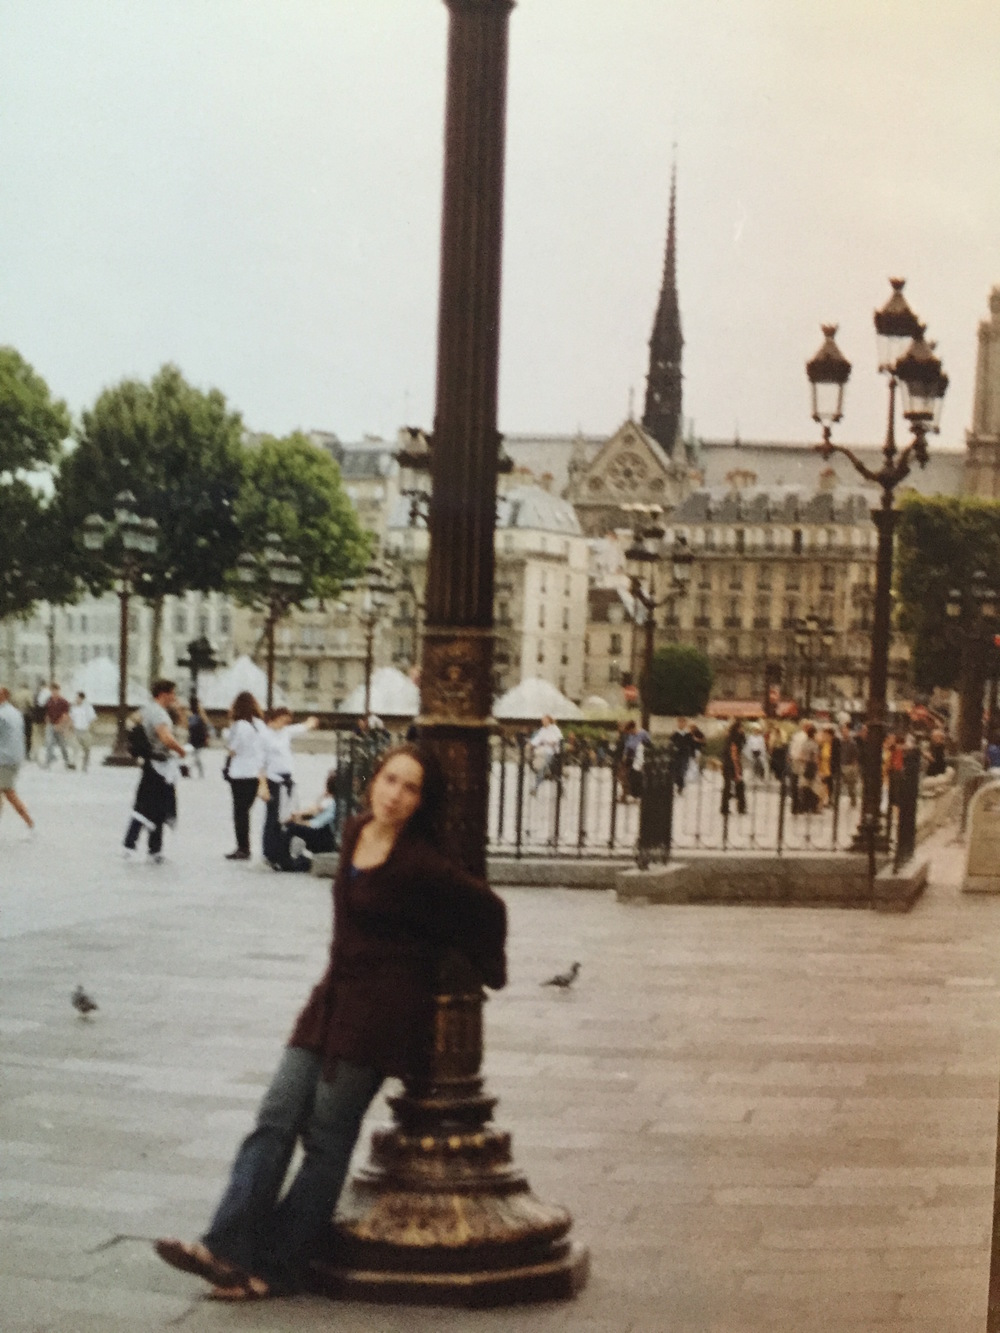 Blurry 15 year old Alisha on her first trip to France 17 years ago.